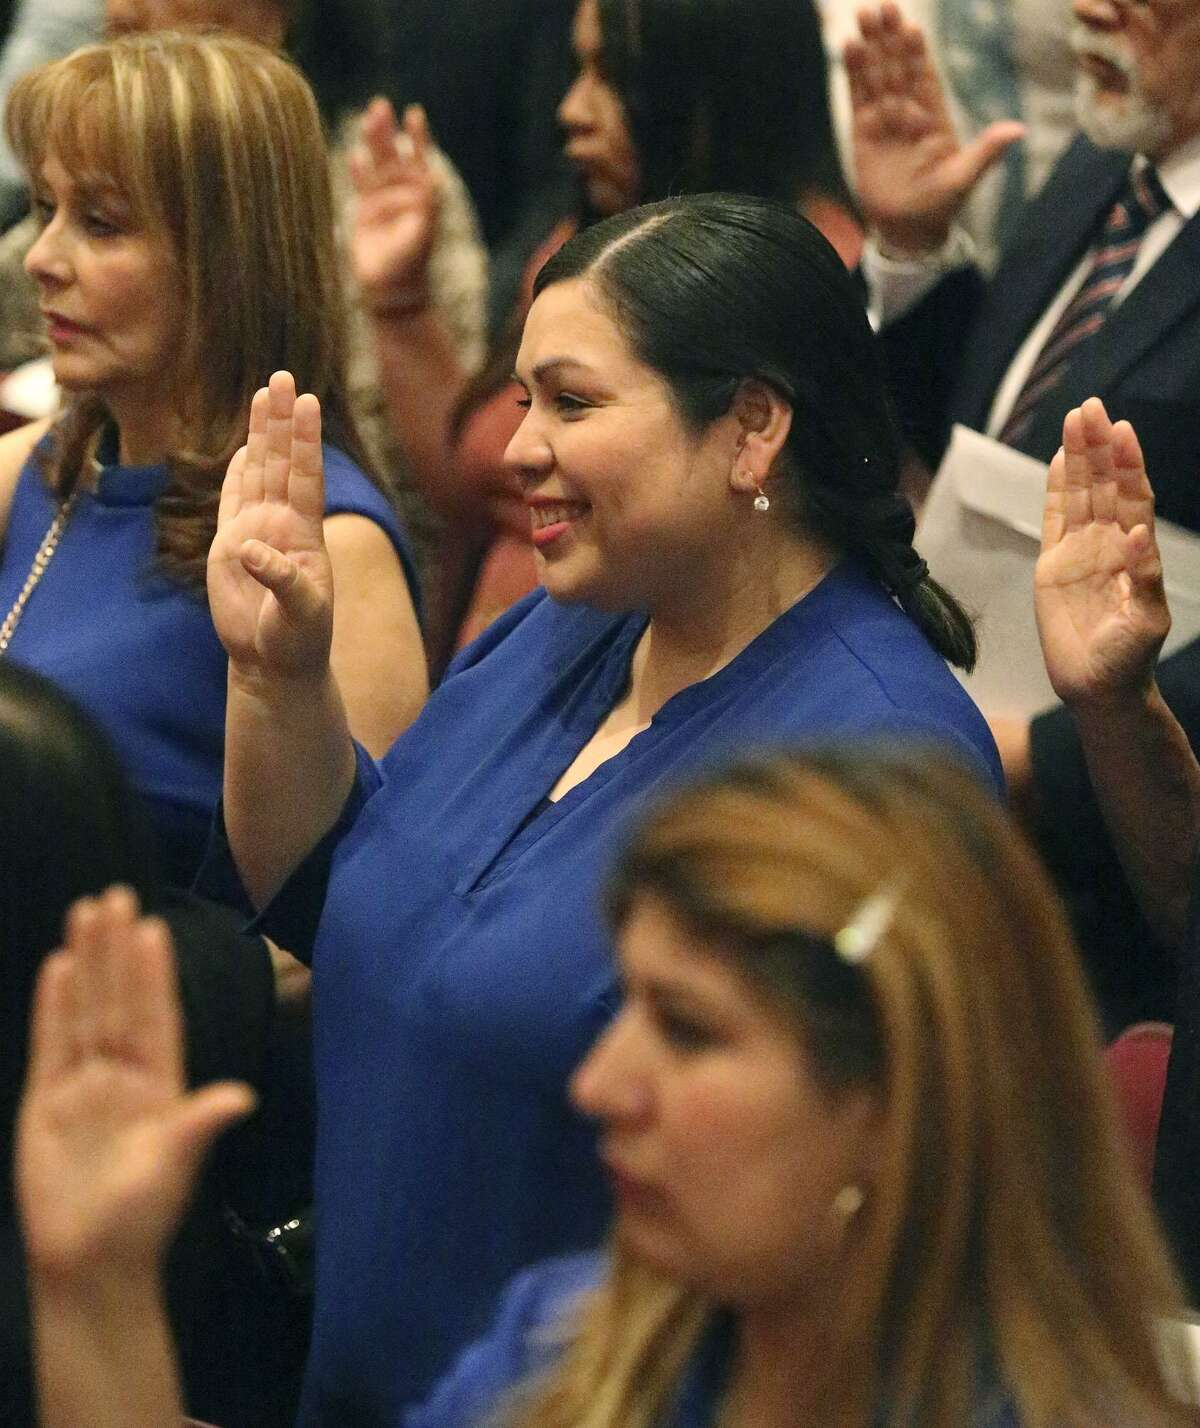 Benita Holguin (center), takes an oath of citizenship at Thursday's naturalization ceremony. In 2012, she became the first undocumented person to speak at a national convention of a major political party.